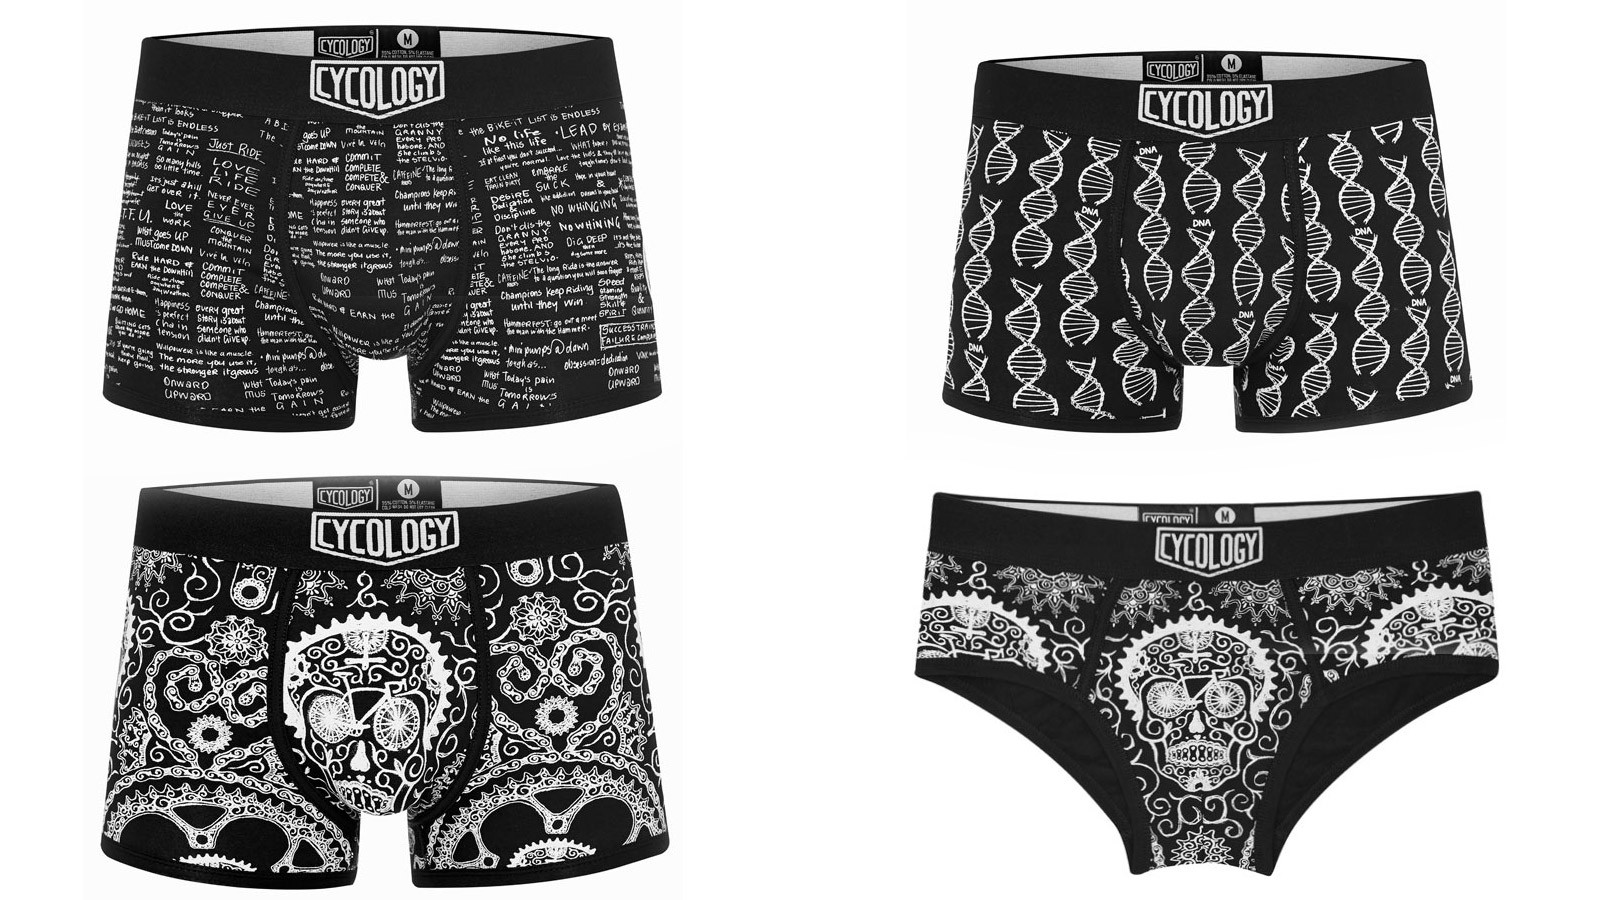 Cycology is now printing its hand drawn designs onto underwear